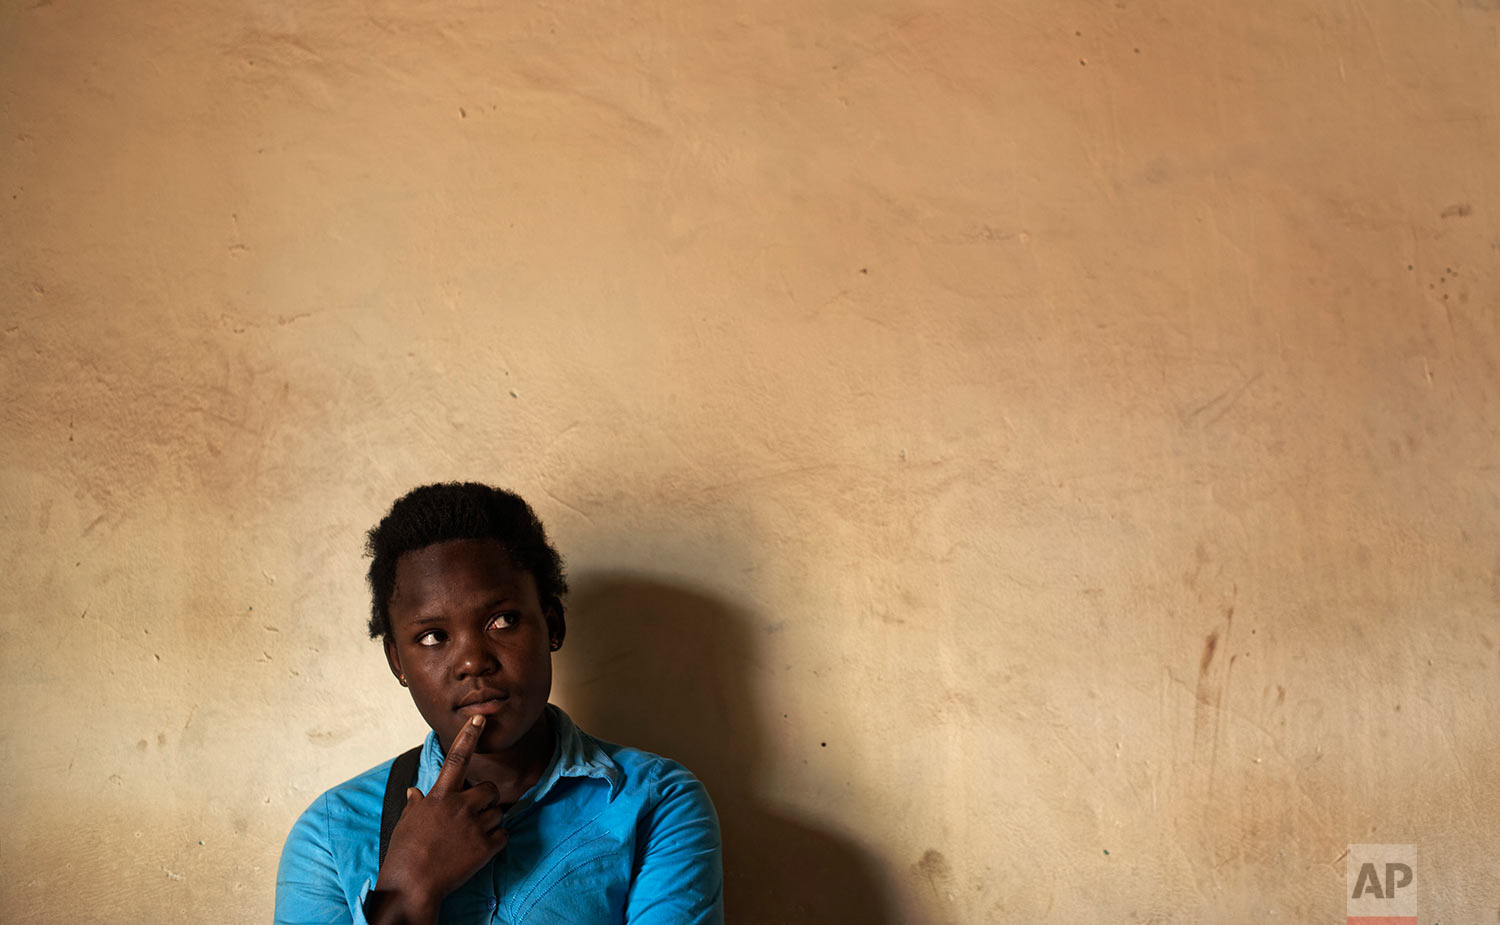 In this Wednesday, May 31, 2017 photo, Asimart Nakabanda, 15, whose child marriage was foiled at the planned wedding ceremony in a surprise raid by police, discusses the events in the village of Lwamaggwa, near Masaka, in Uganda.  (AP Photo/Ben Curtis)